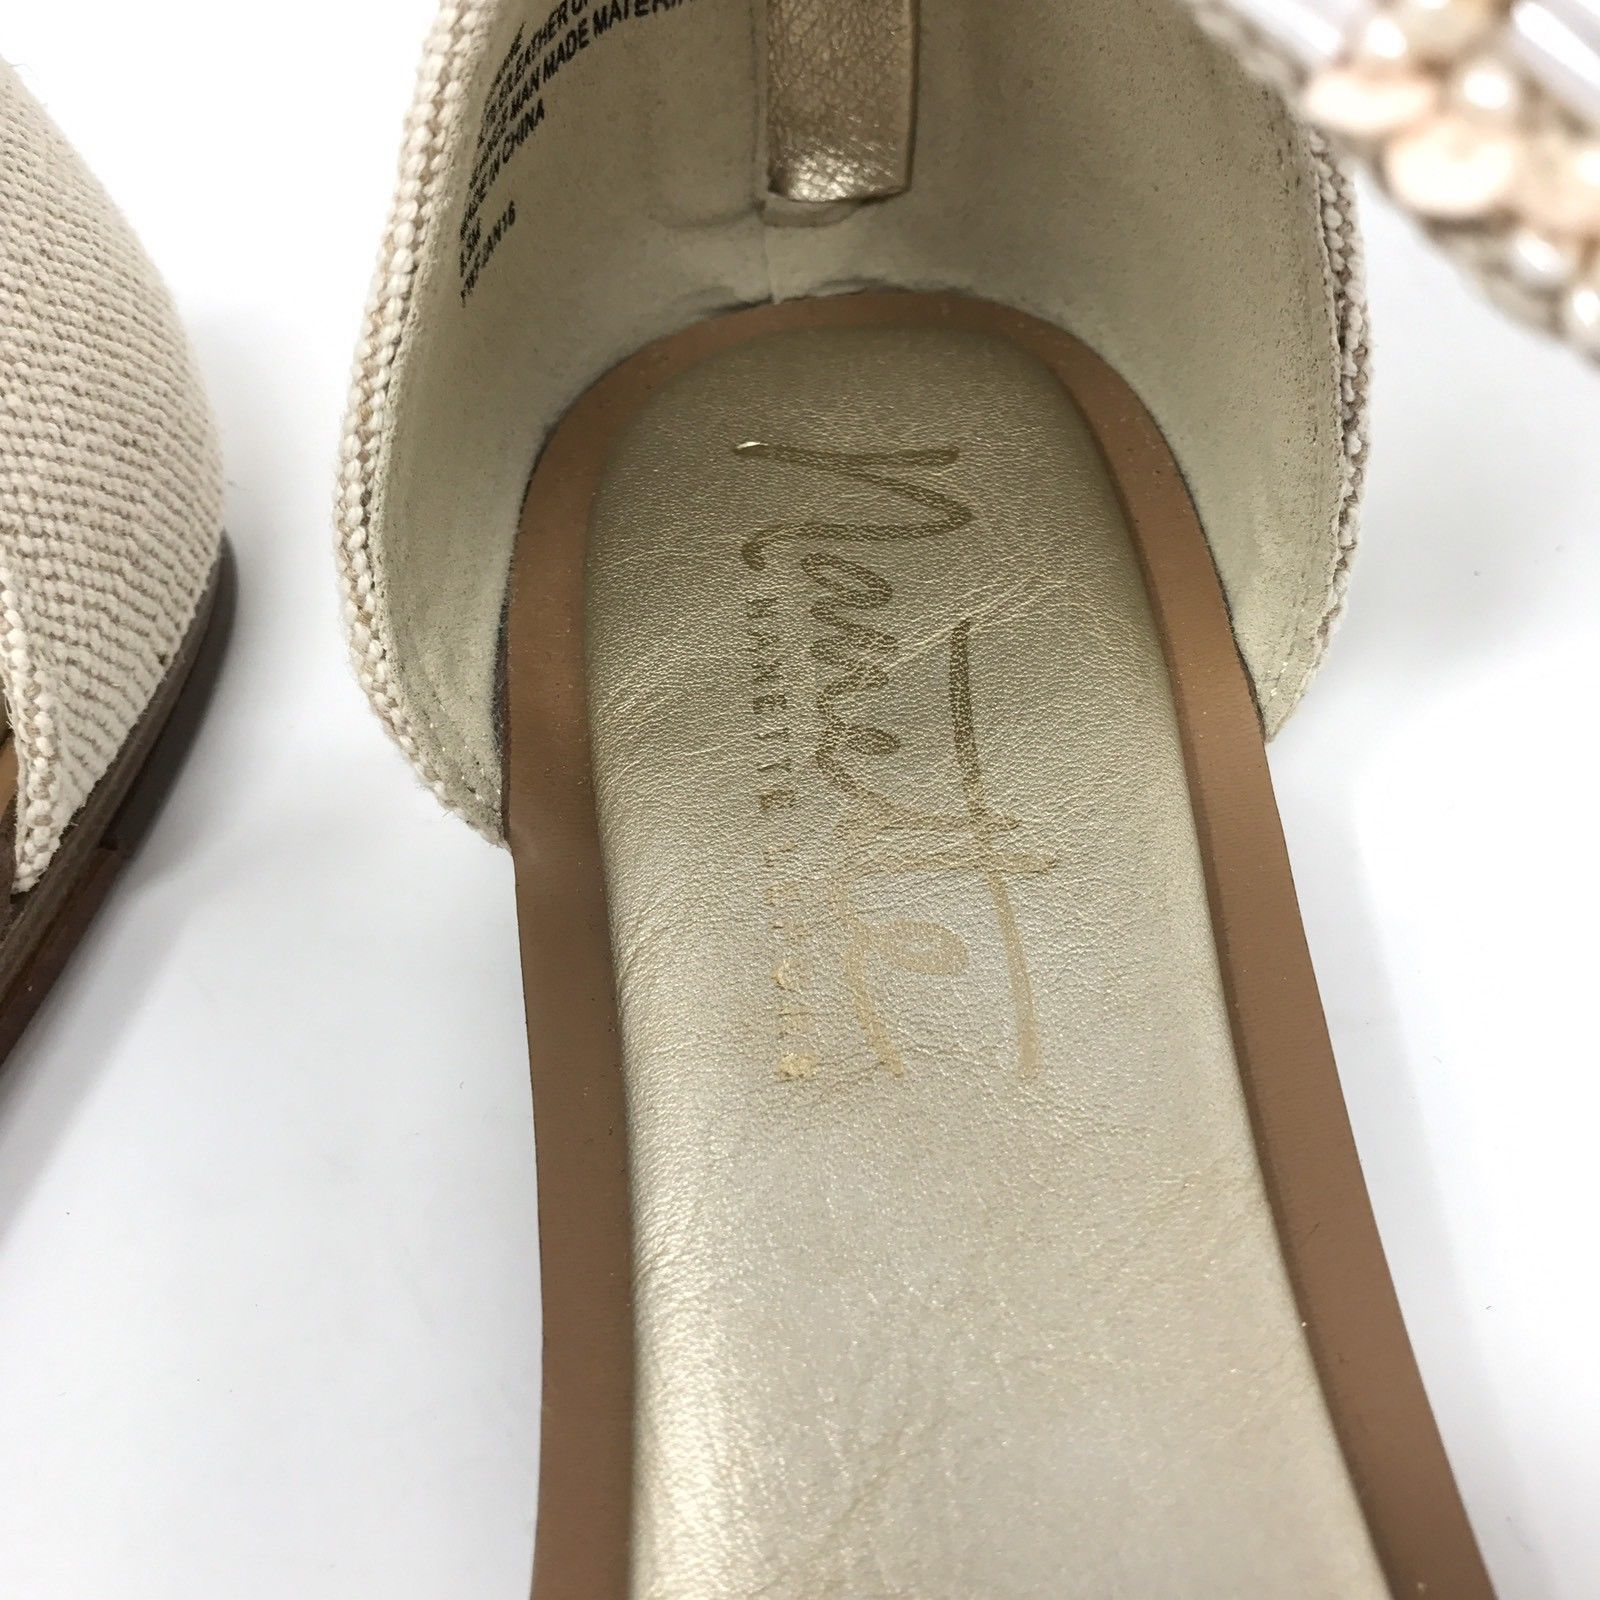 Nanette Lepore Marianne Women's Size 8.5 Ankle Strap Flat Sandals Beaded Natural